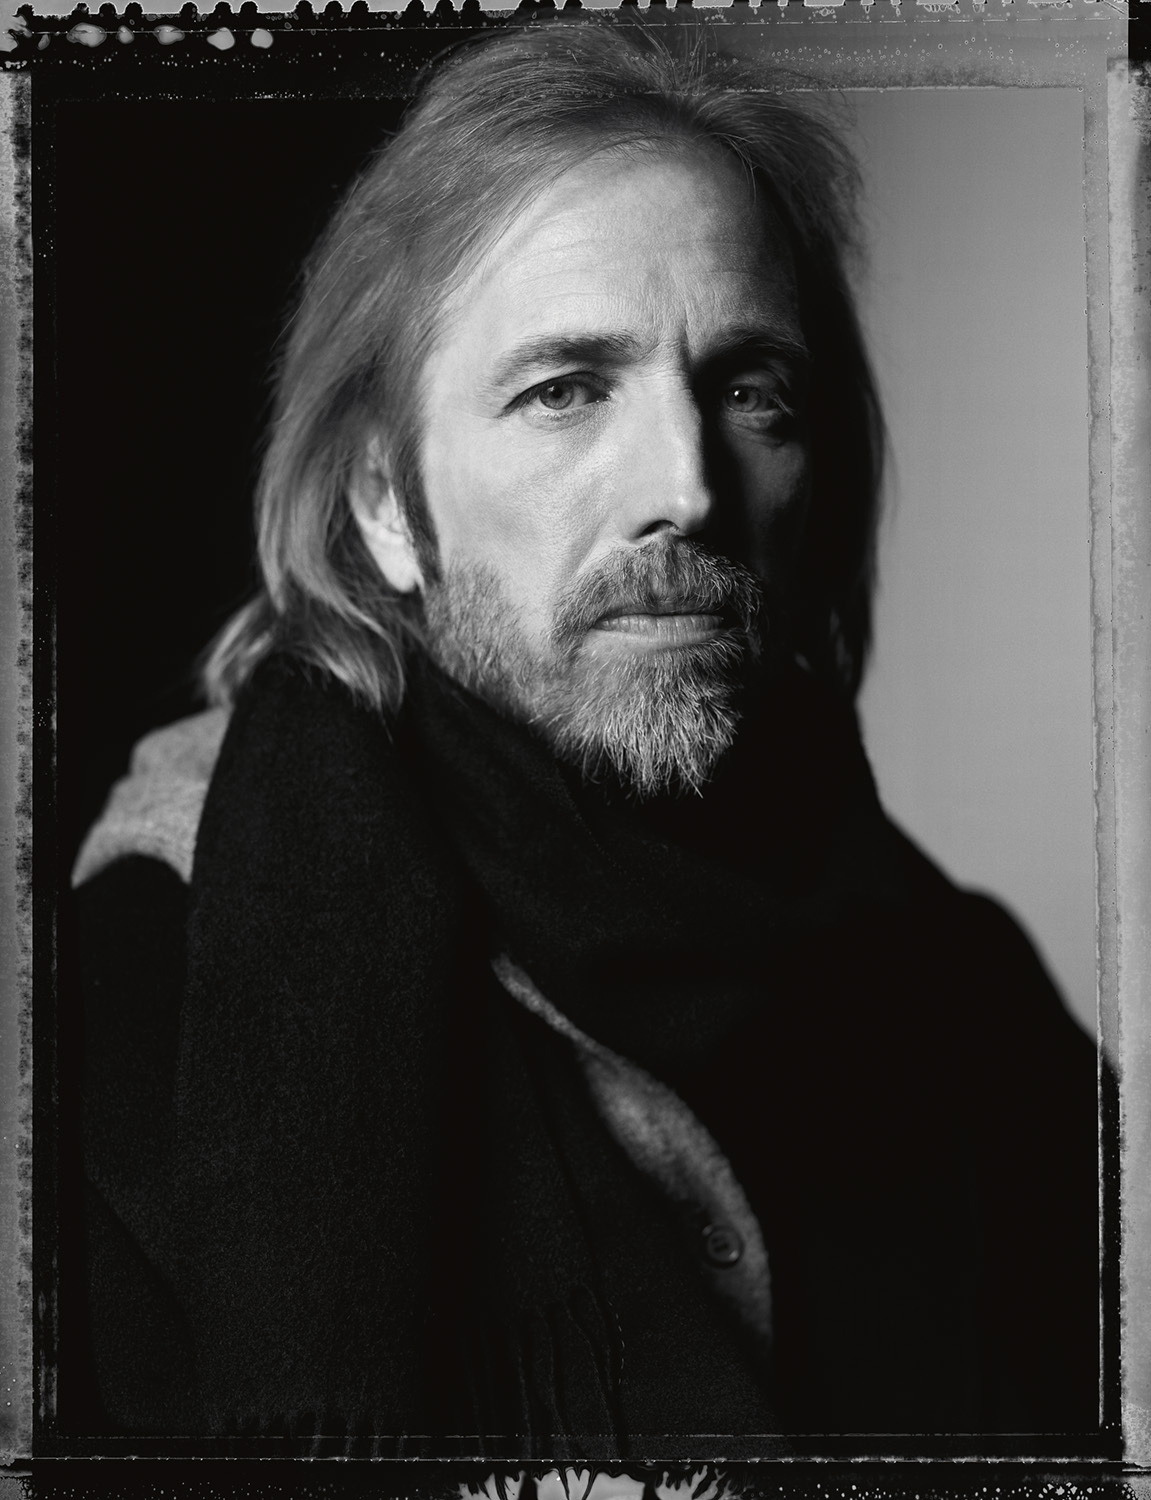 Tom Petty, Rolling Stone, August 8, 1991